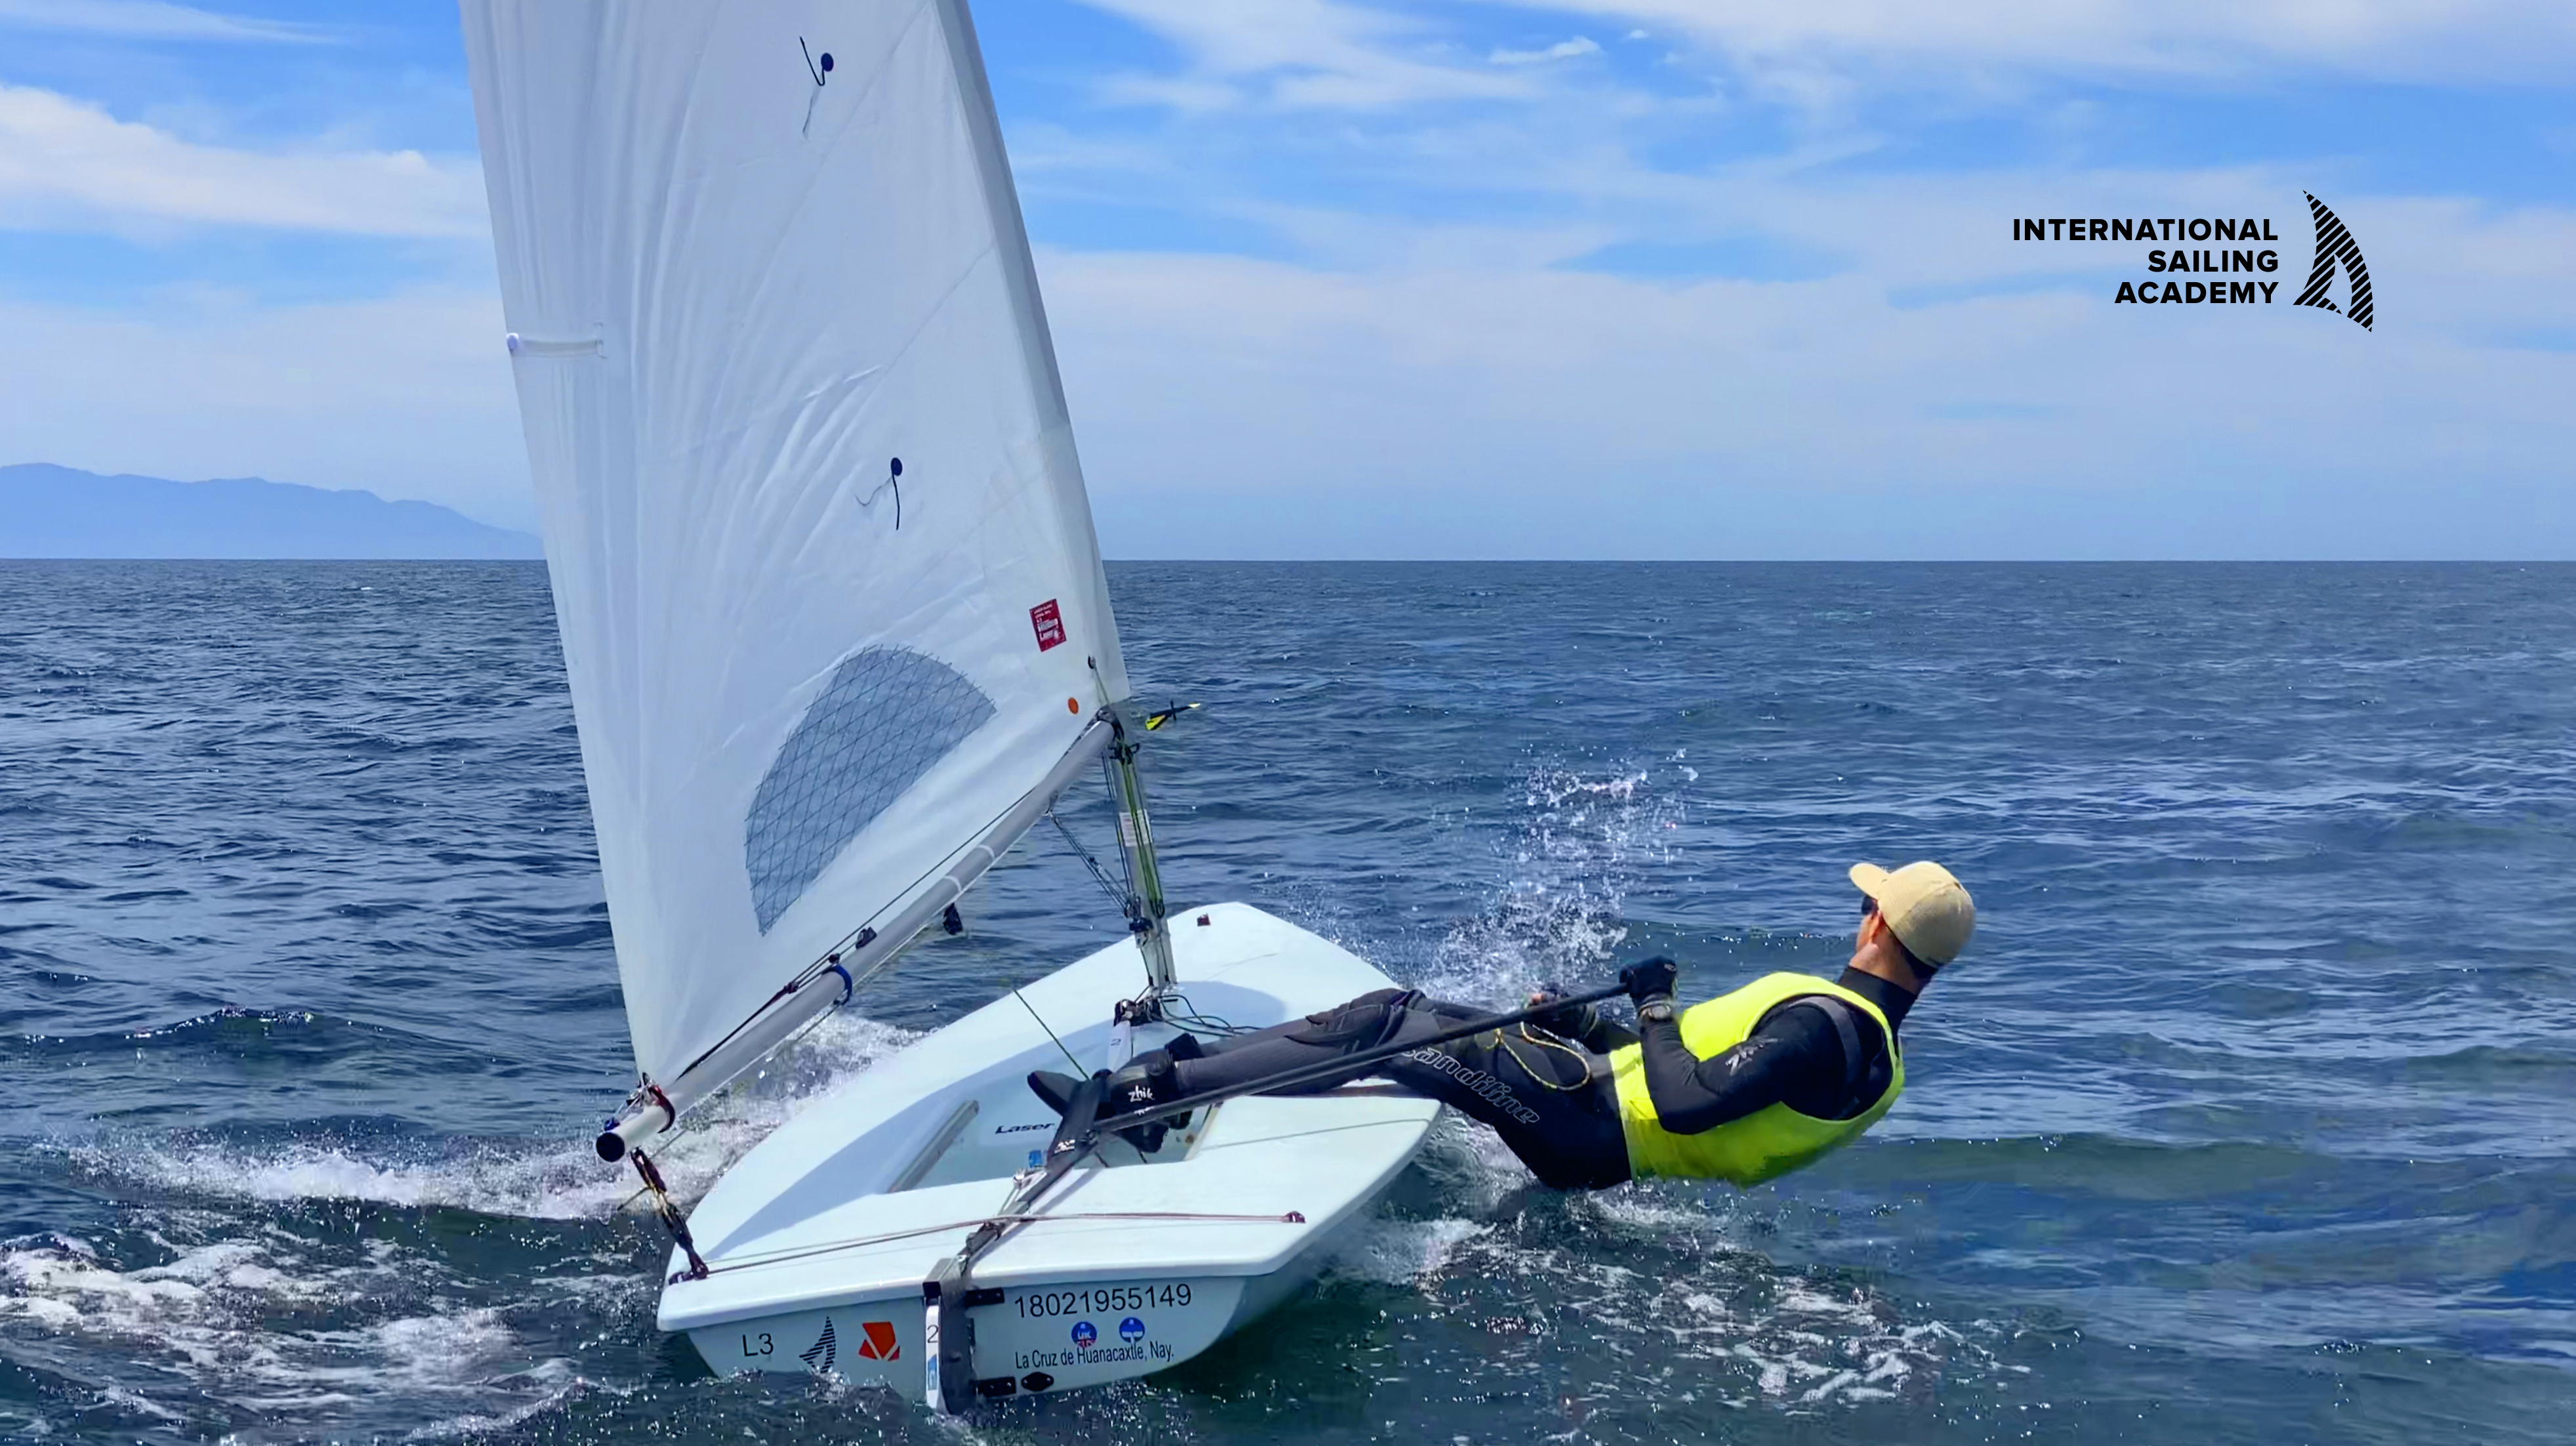 International Sailing Academy: Upwind Speed Complete Course